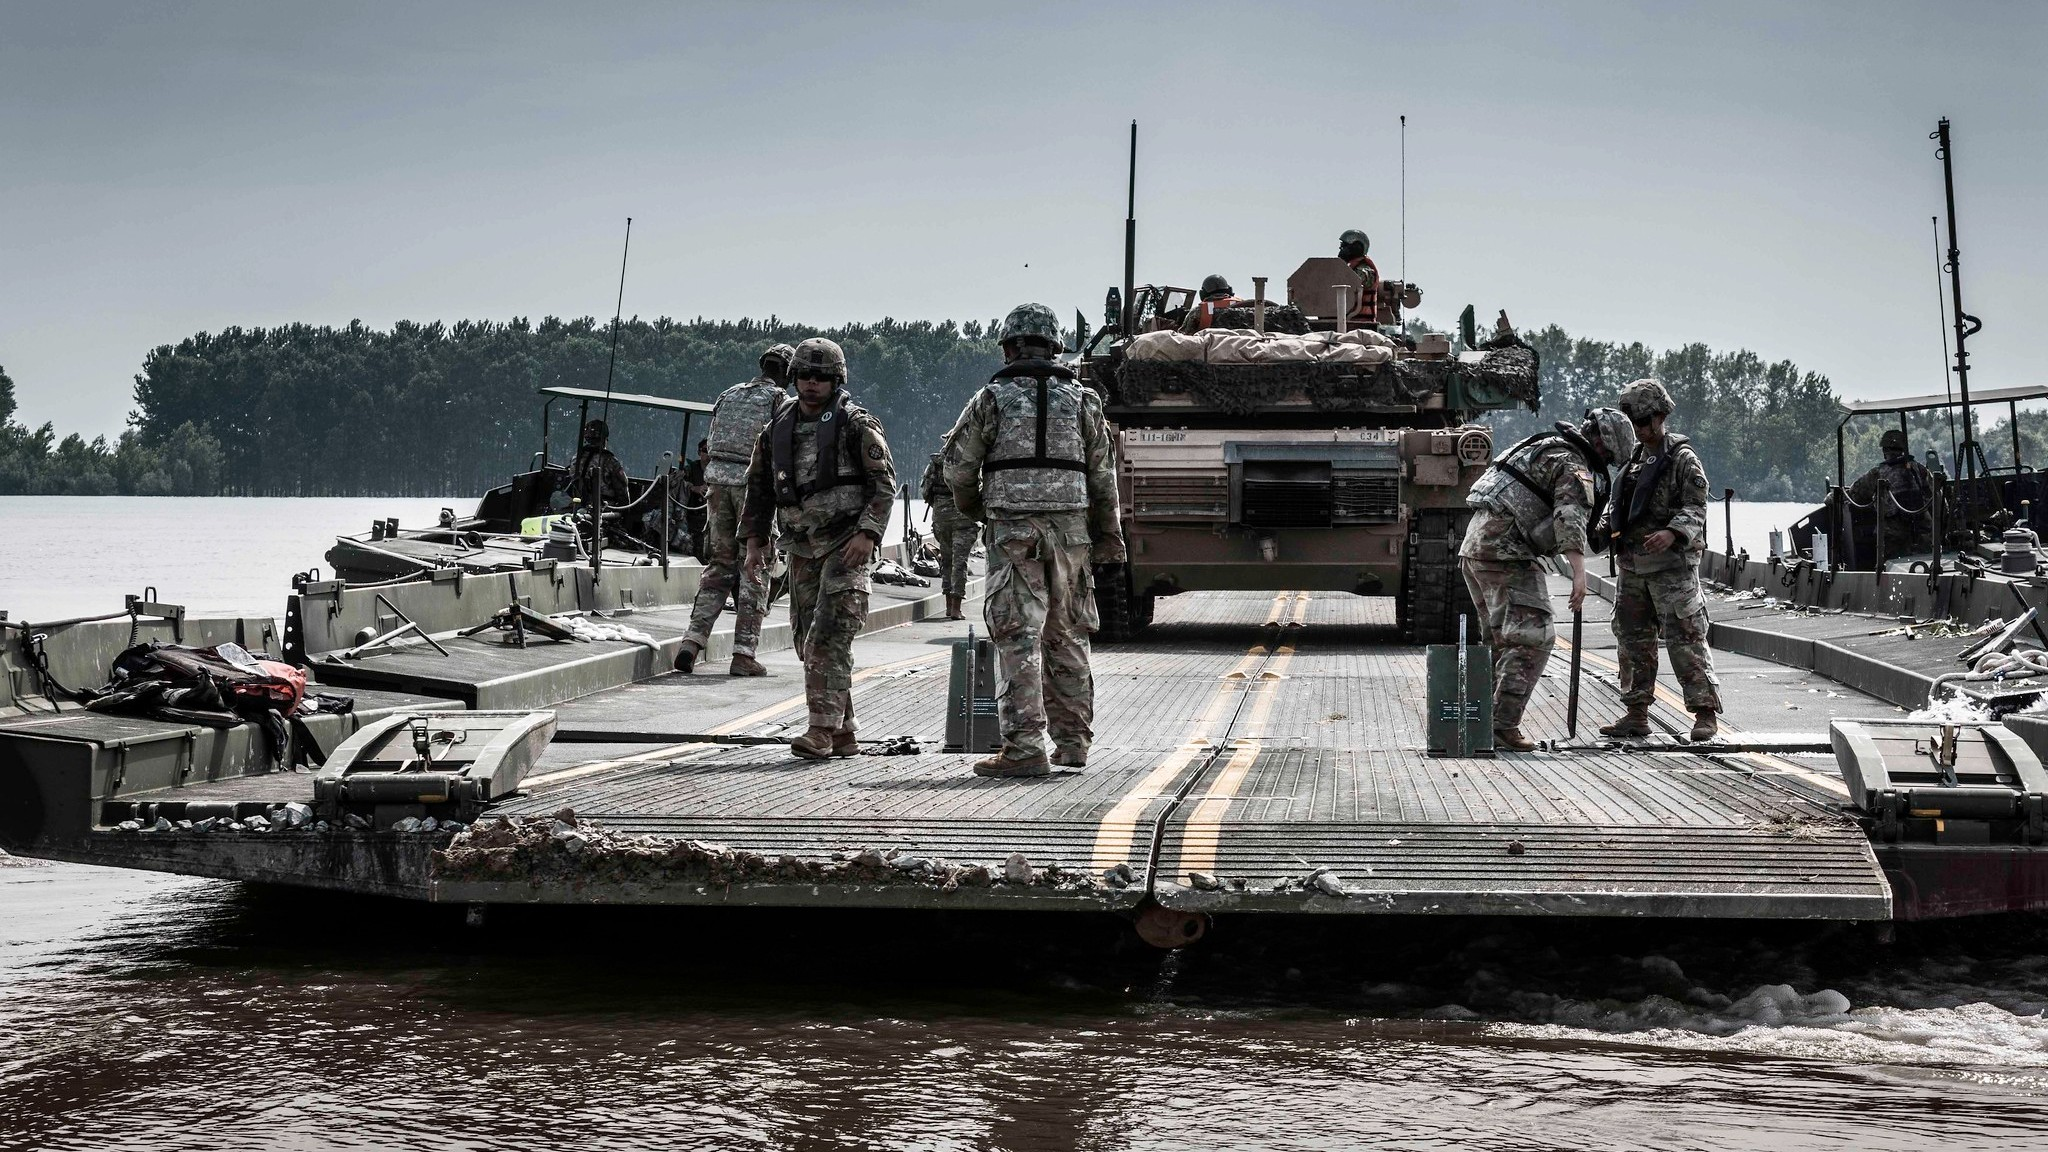 Photo: A U.S. Army M1 Abrams tank is transported across the Danube River in Romania during Exercise Saber Guardian 2019. The exercise includes more than 8,000 soldiers from six NATO Allied and partner nations. It's co-led by Romanian Land Forces and U.S. Army Europe. Credit: NATO